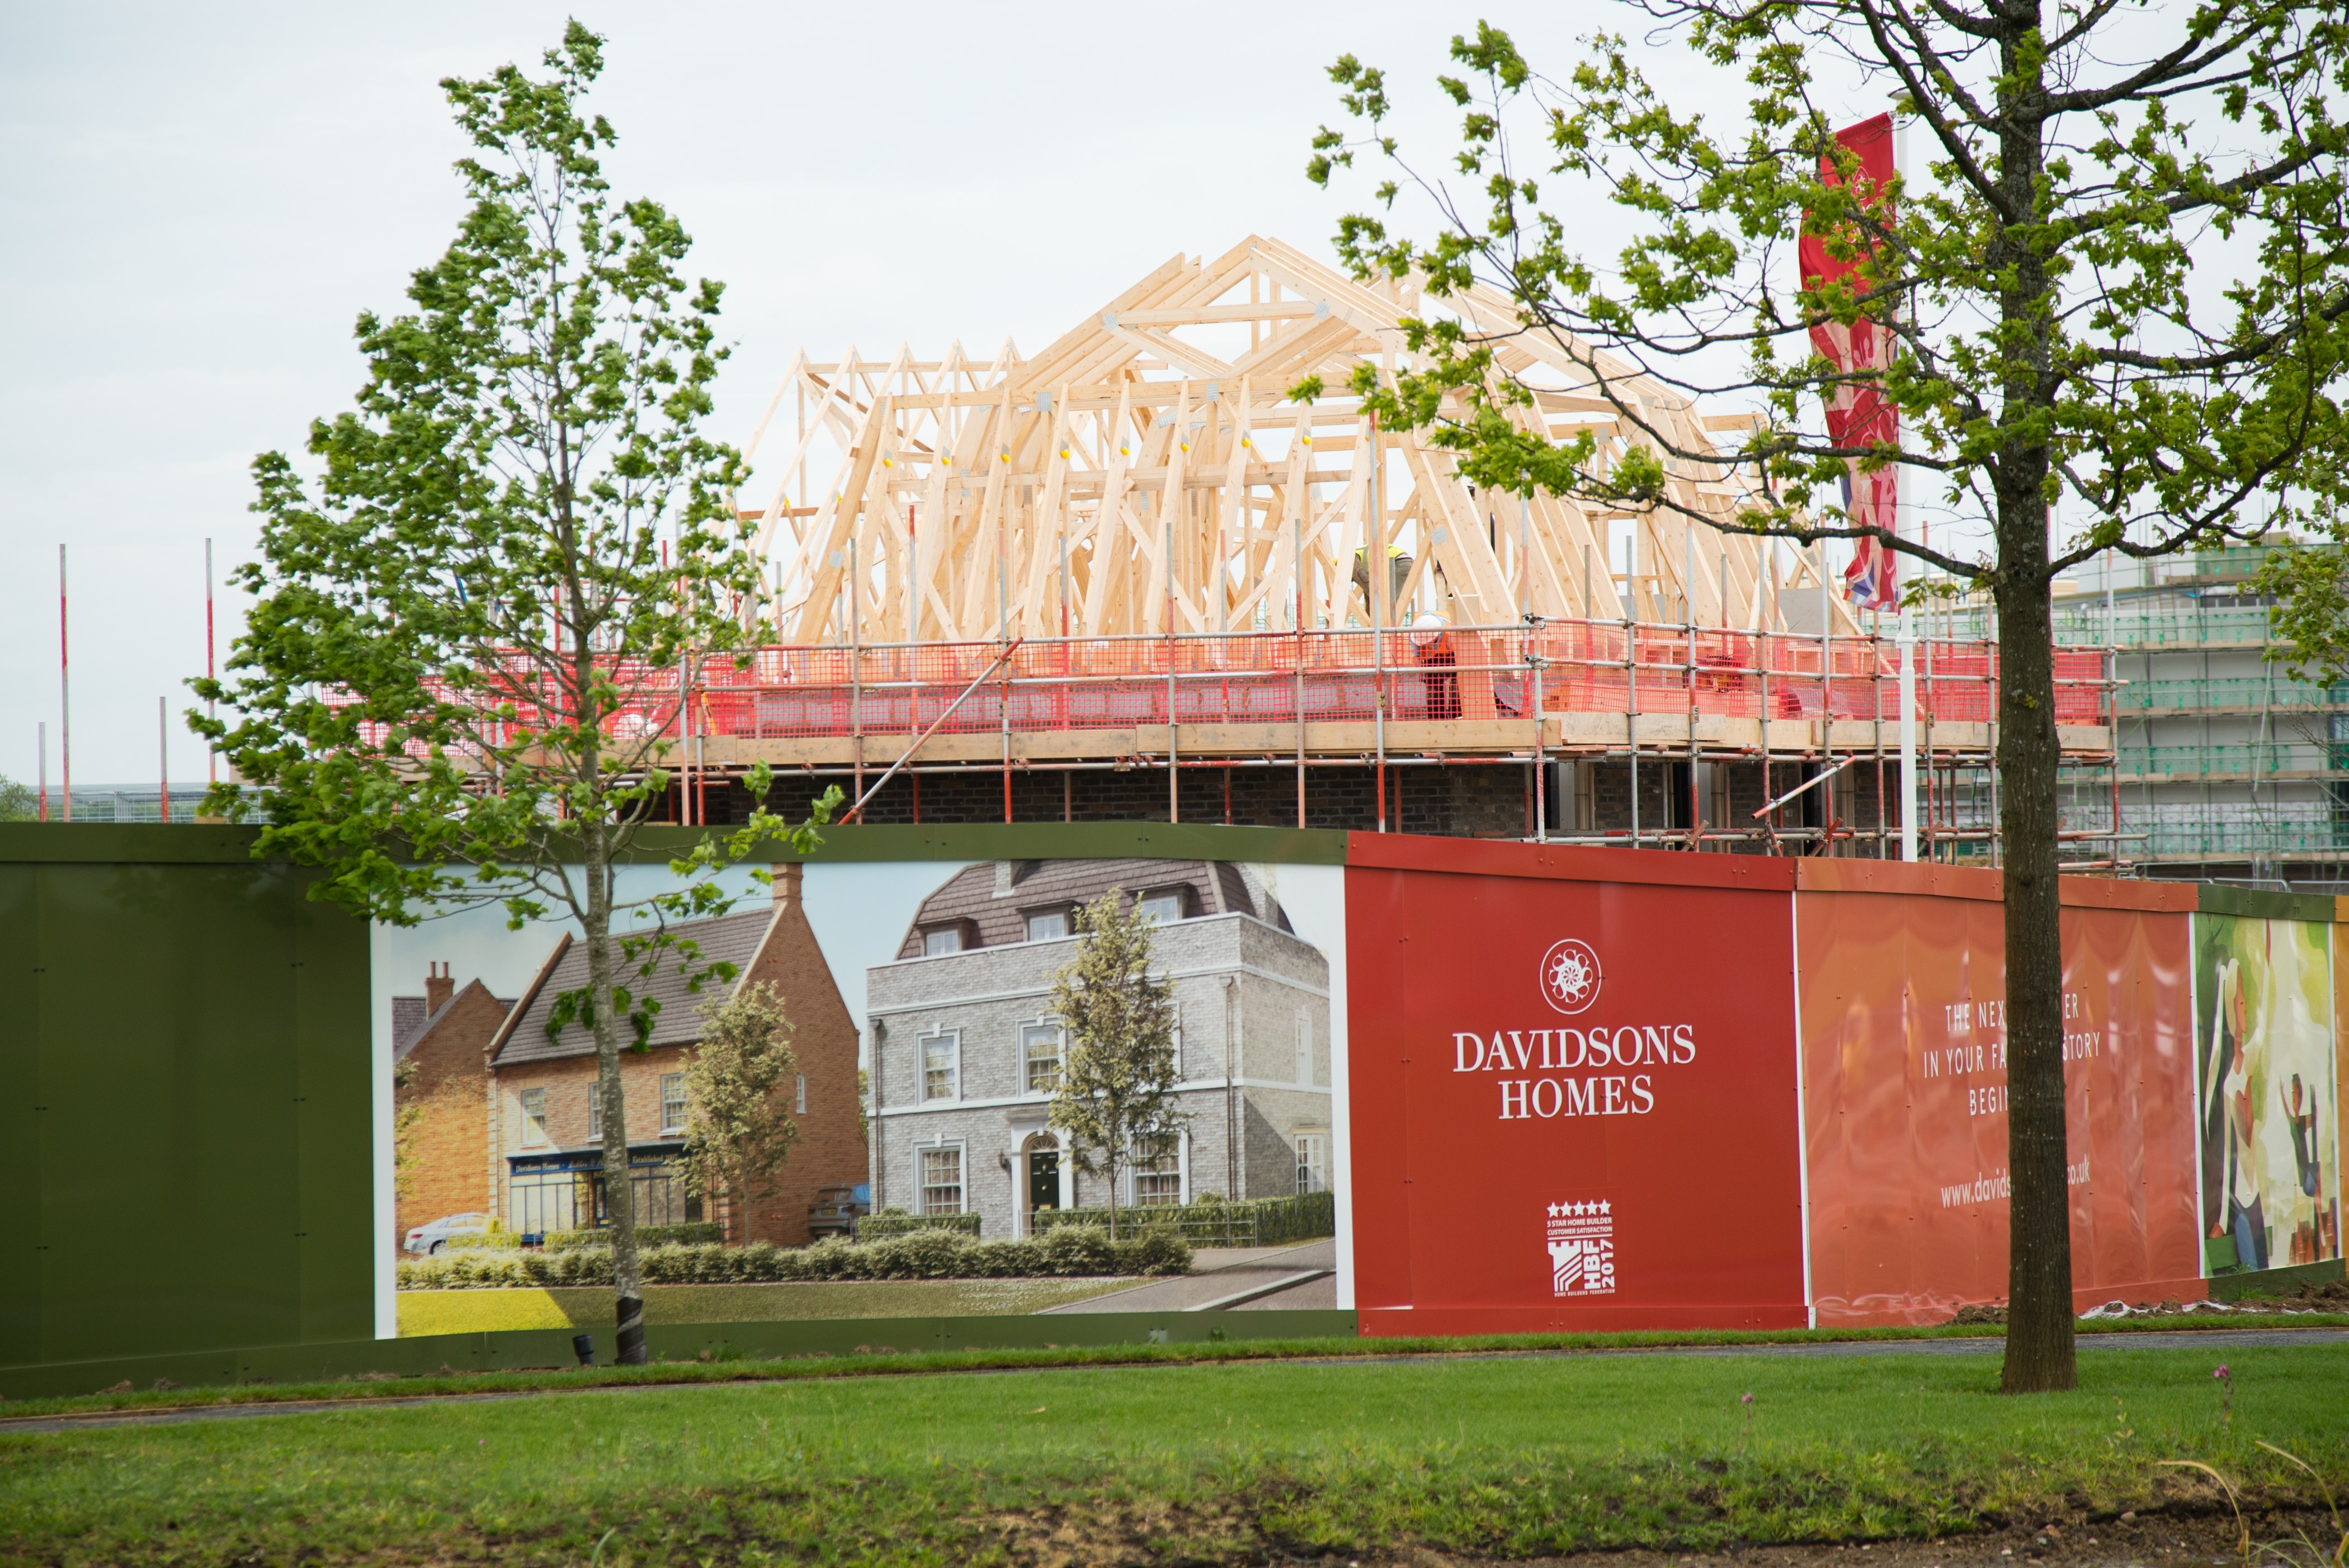 Davidsons Homes first homes for sale at Houlton